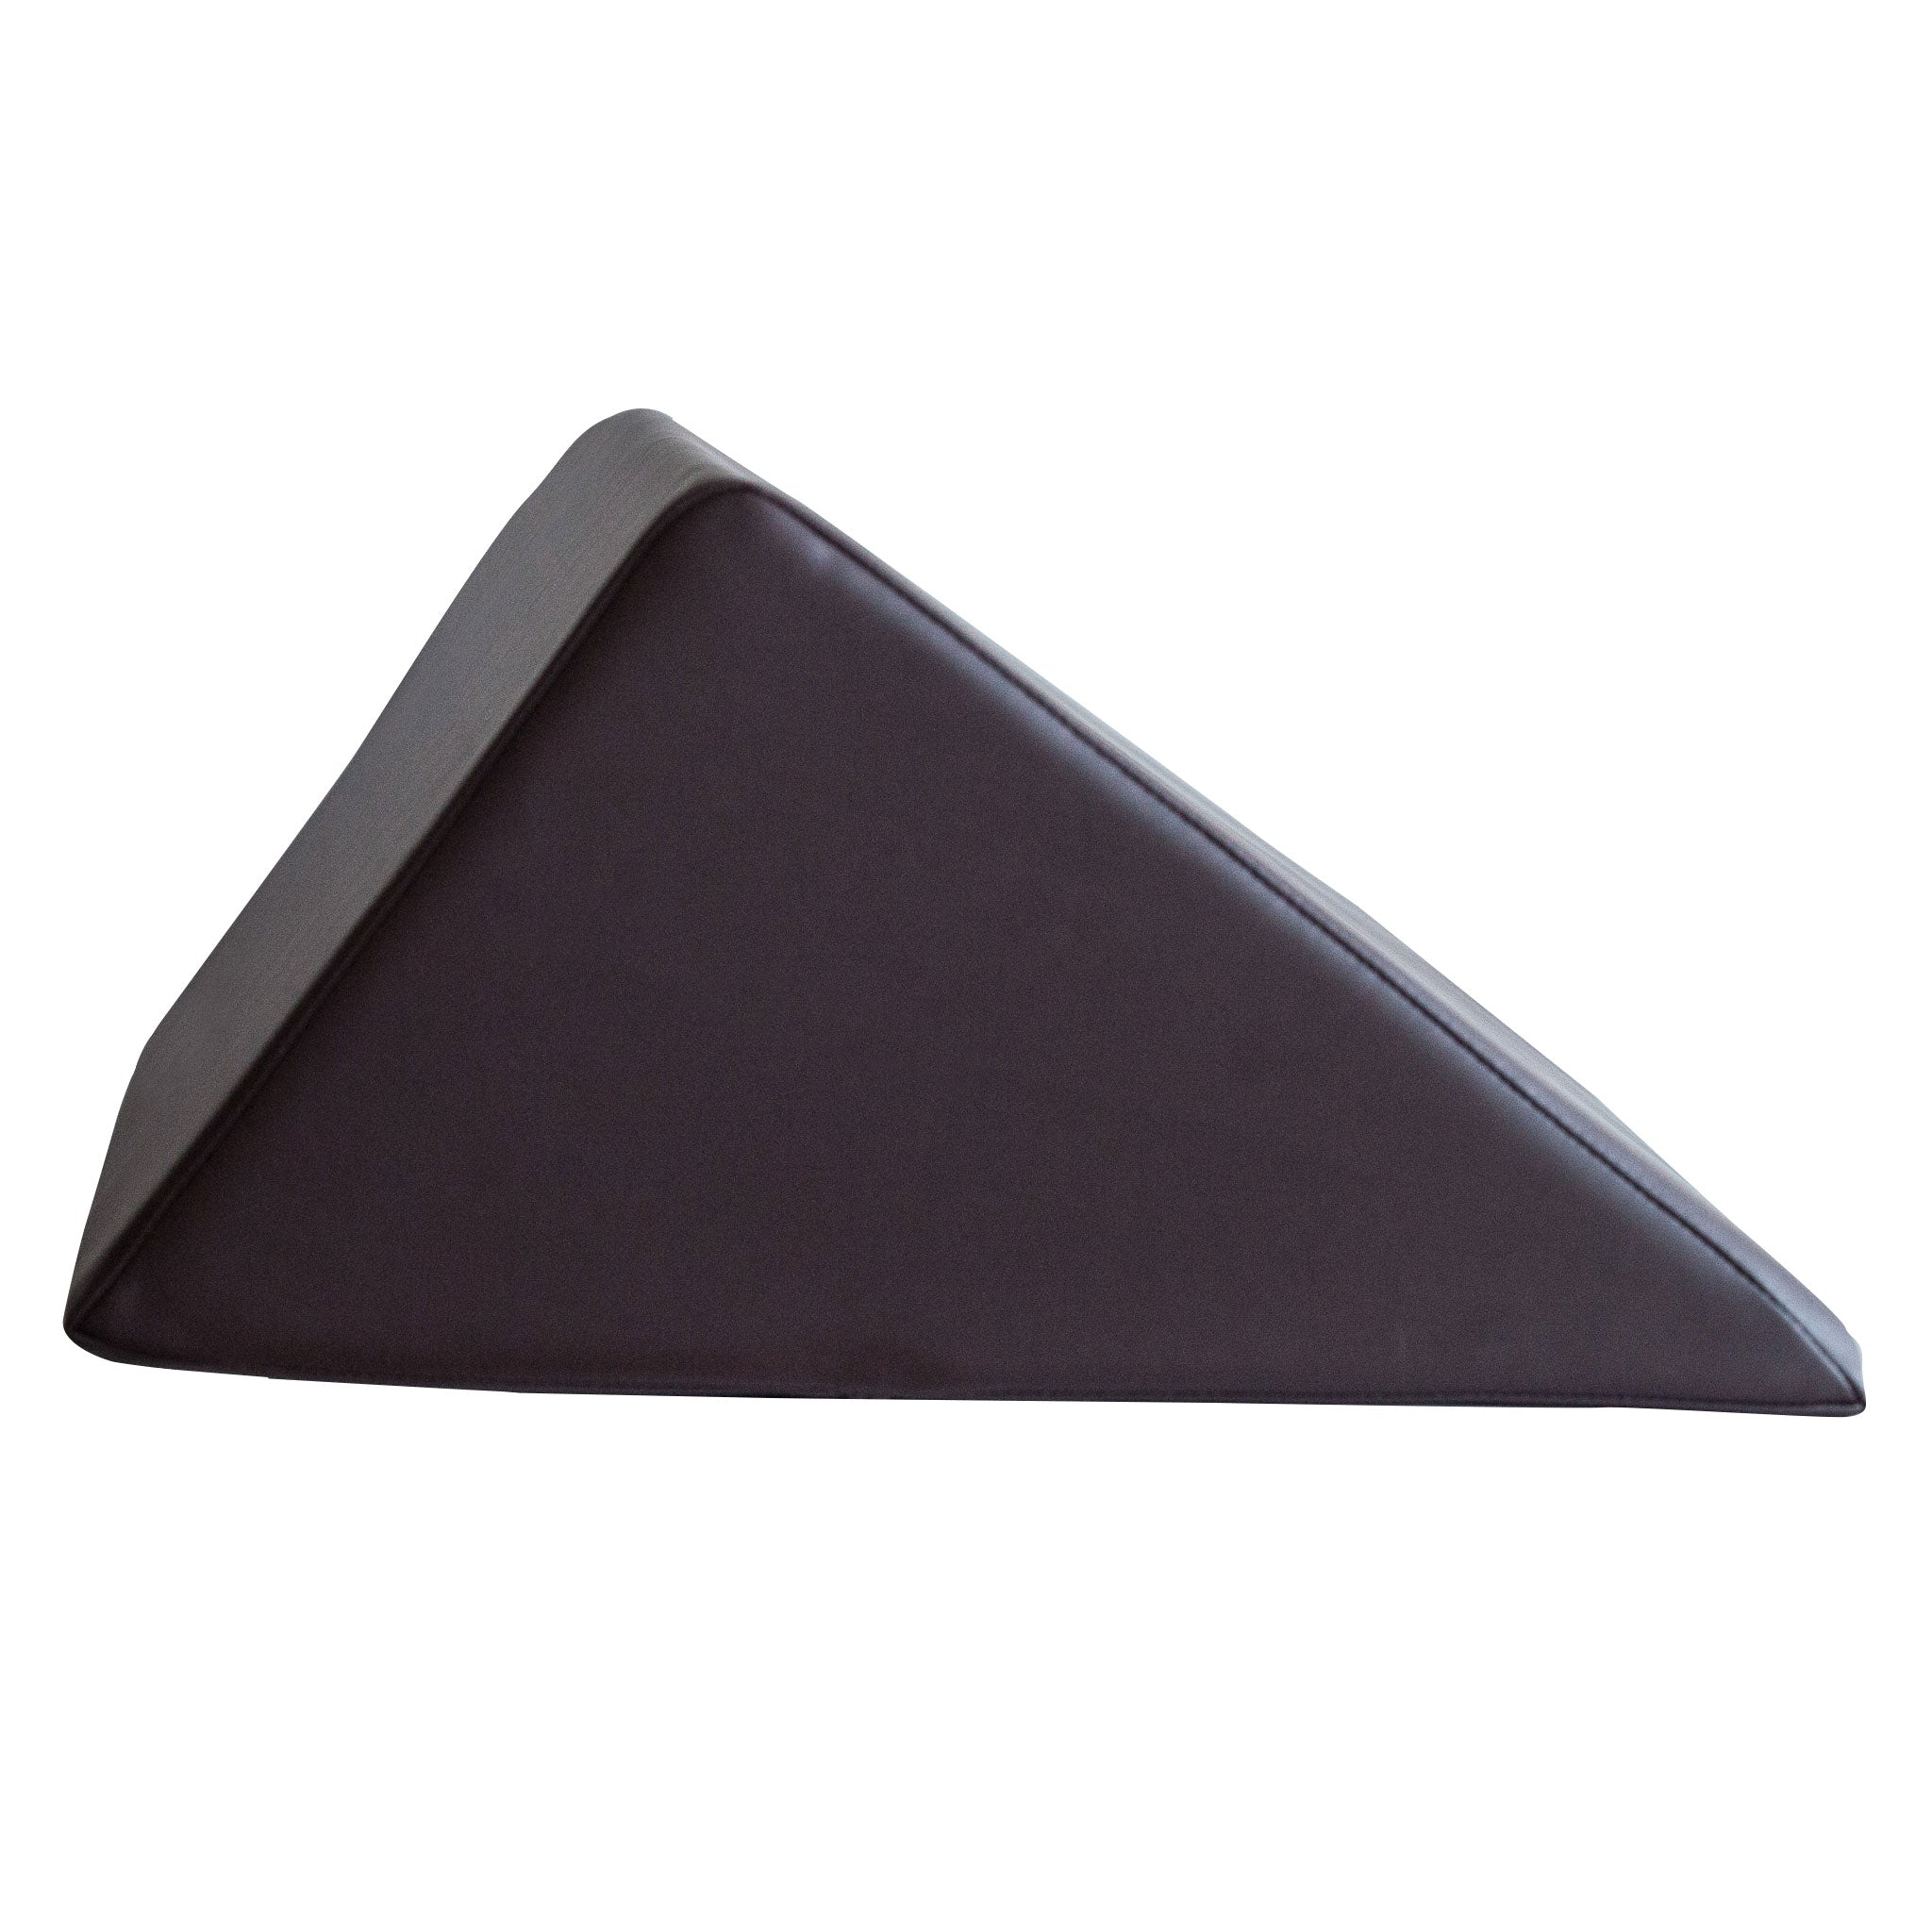 Triangular Positioning Bolster for Bodyworkers